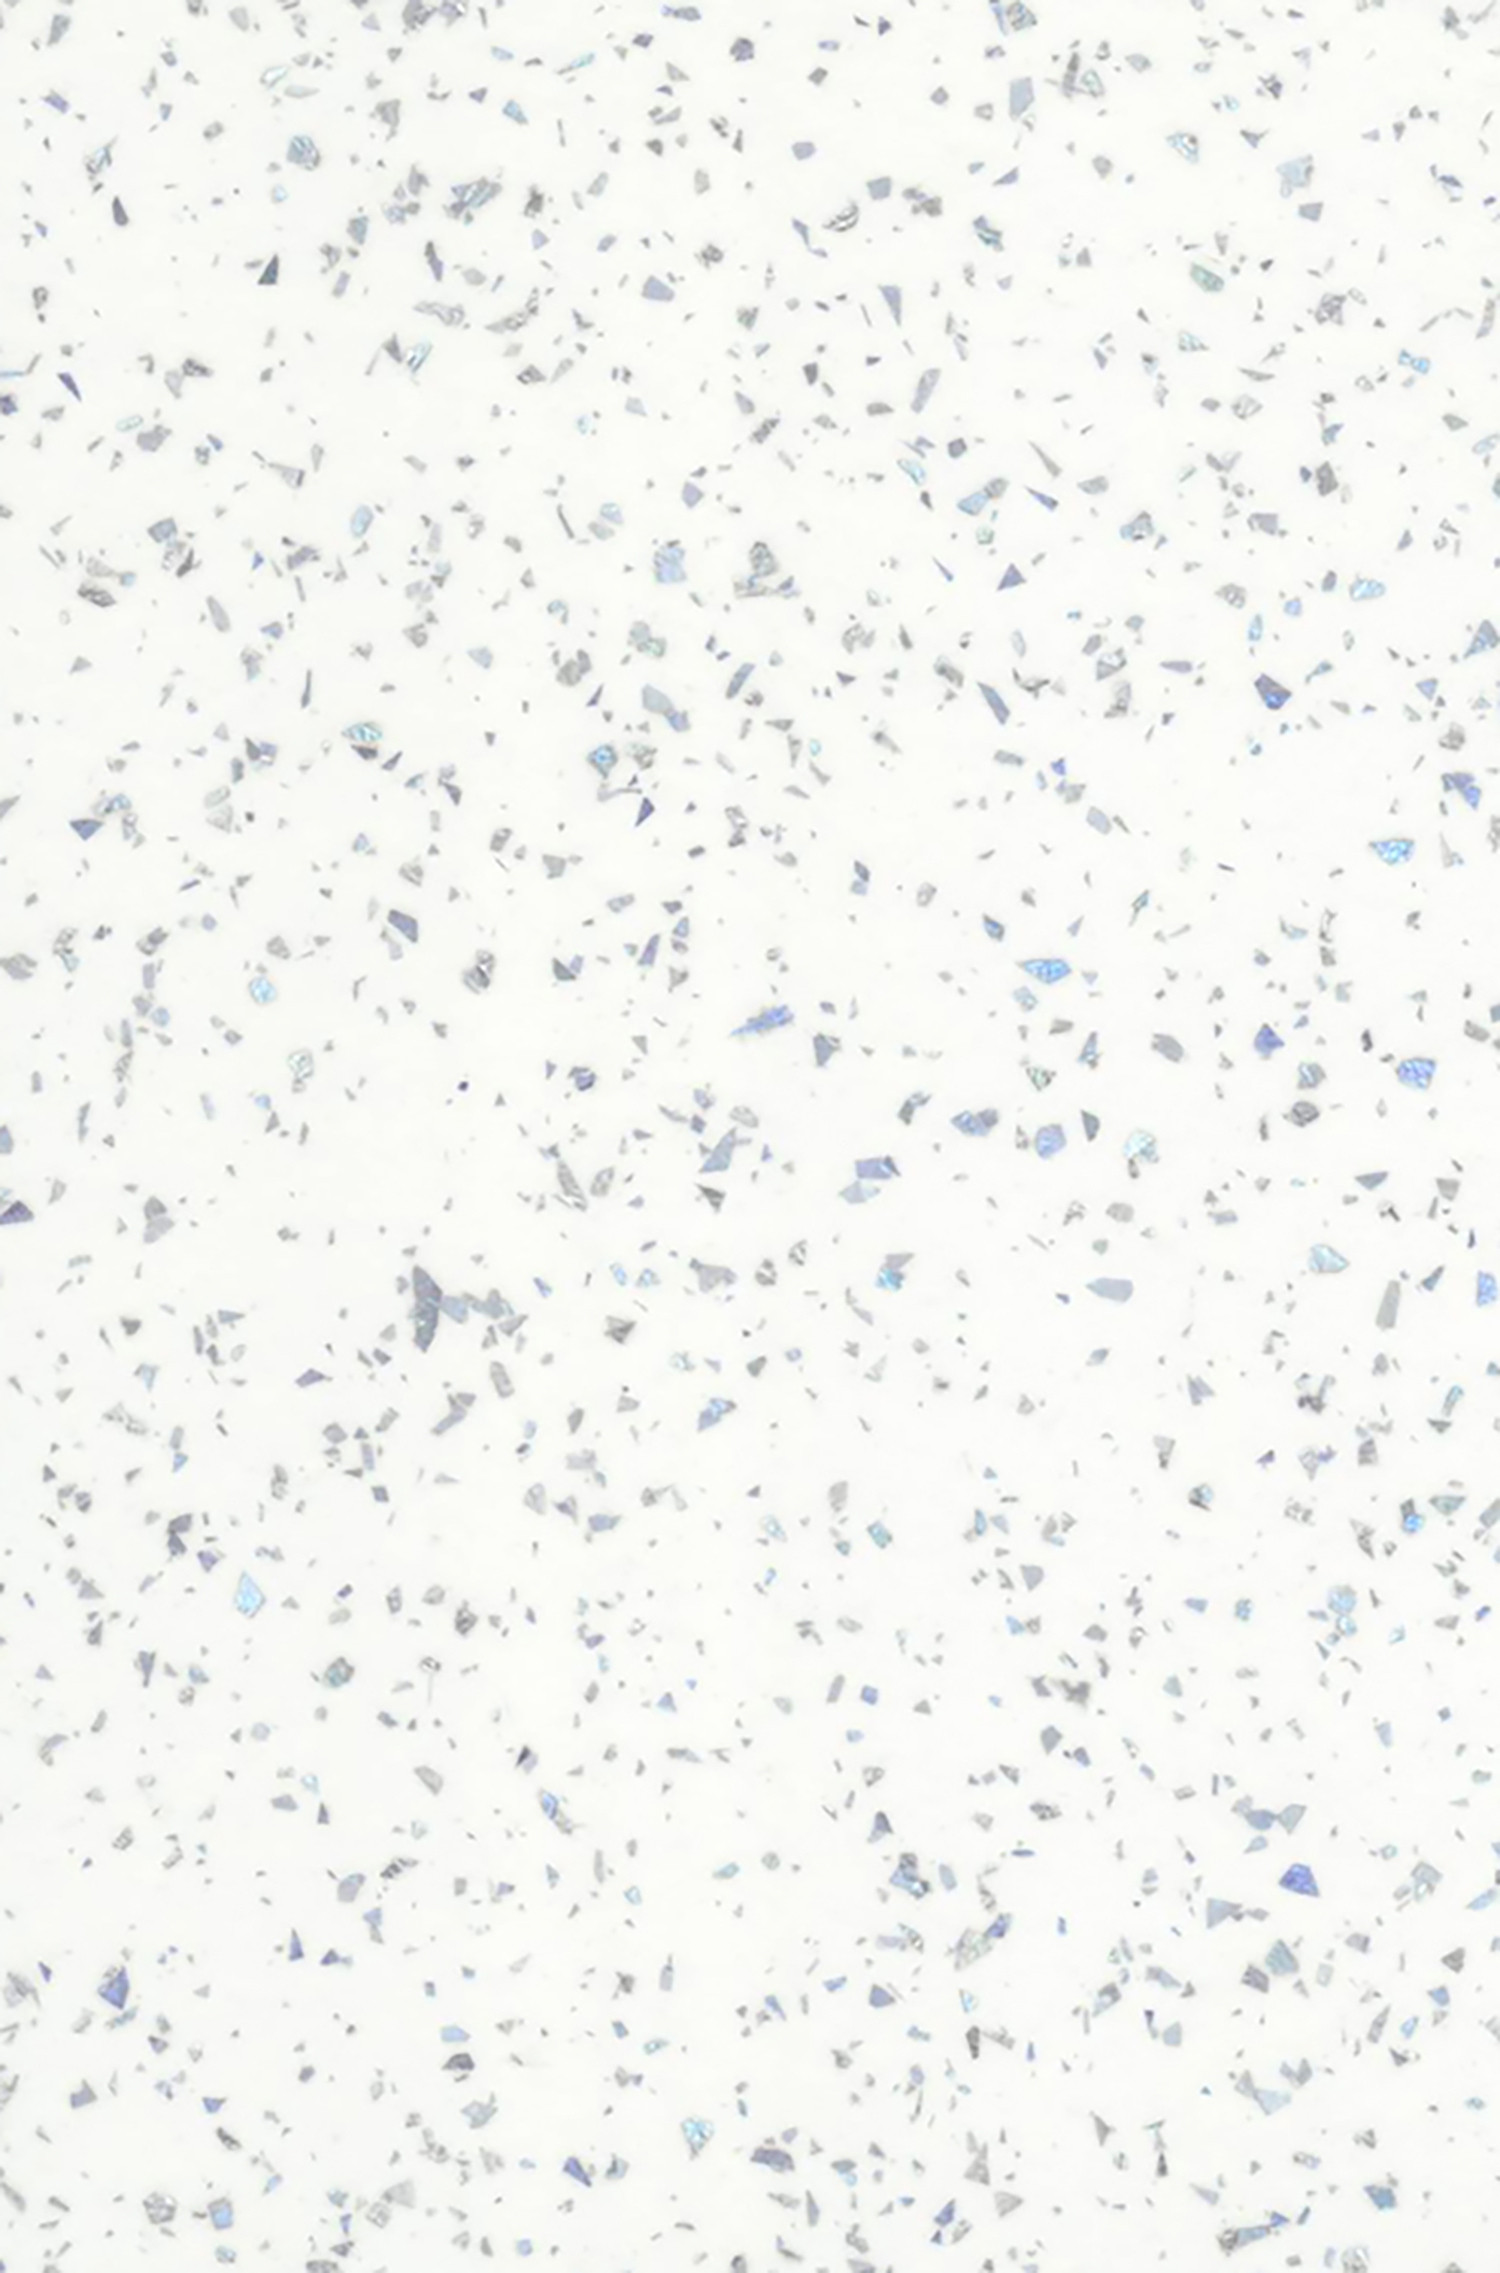 White Galaxy Wetwall Panel - Tongue & Grooved